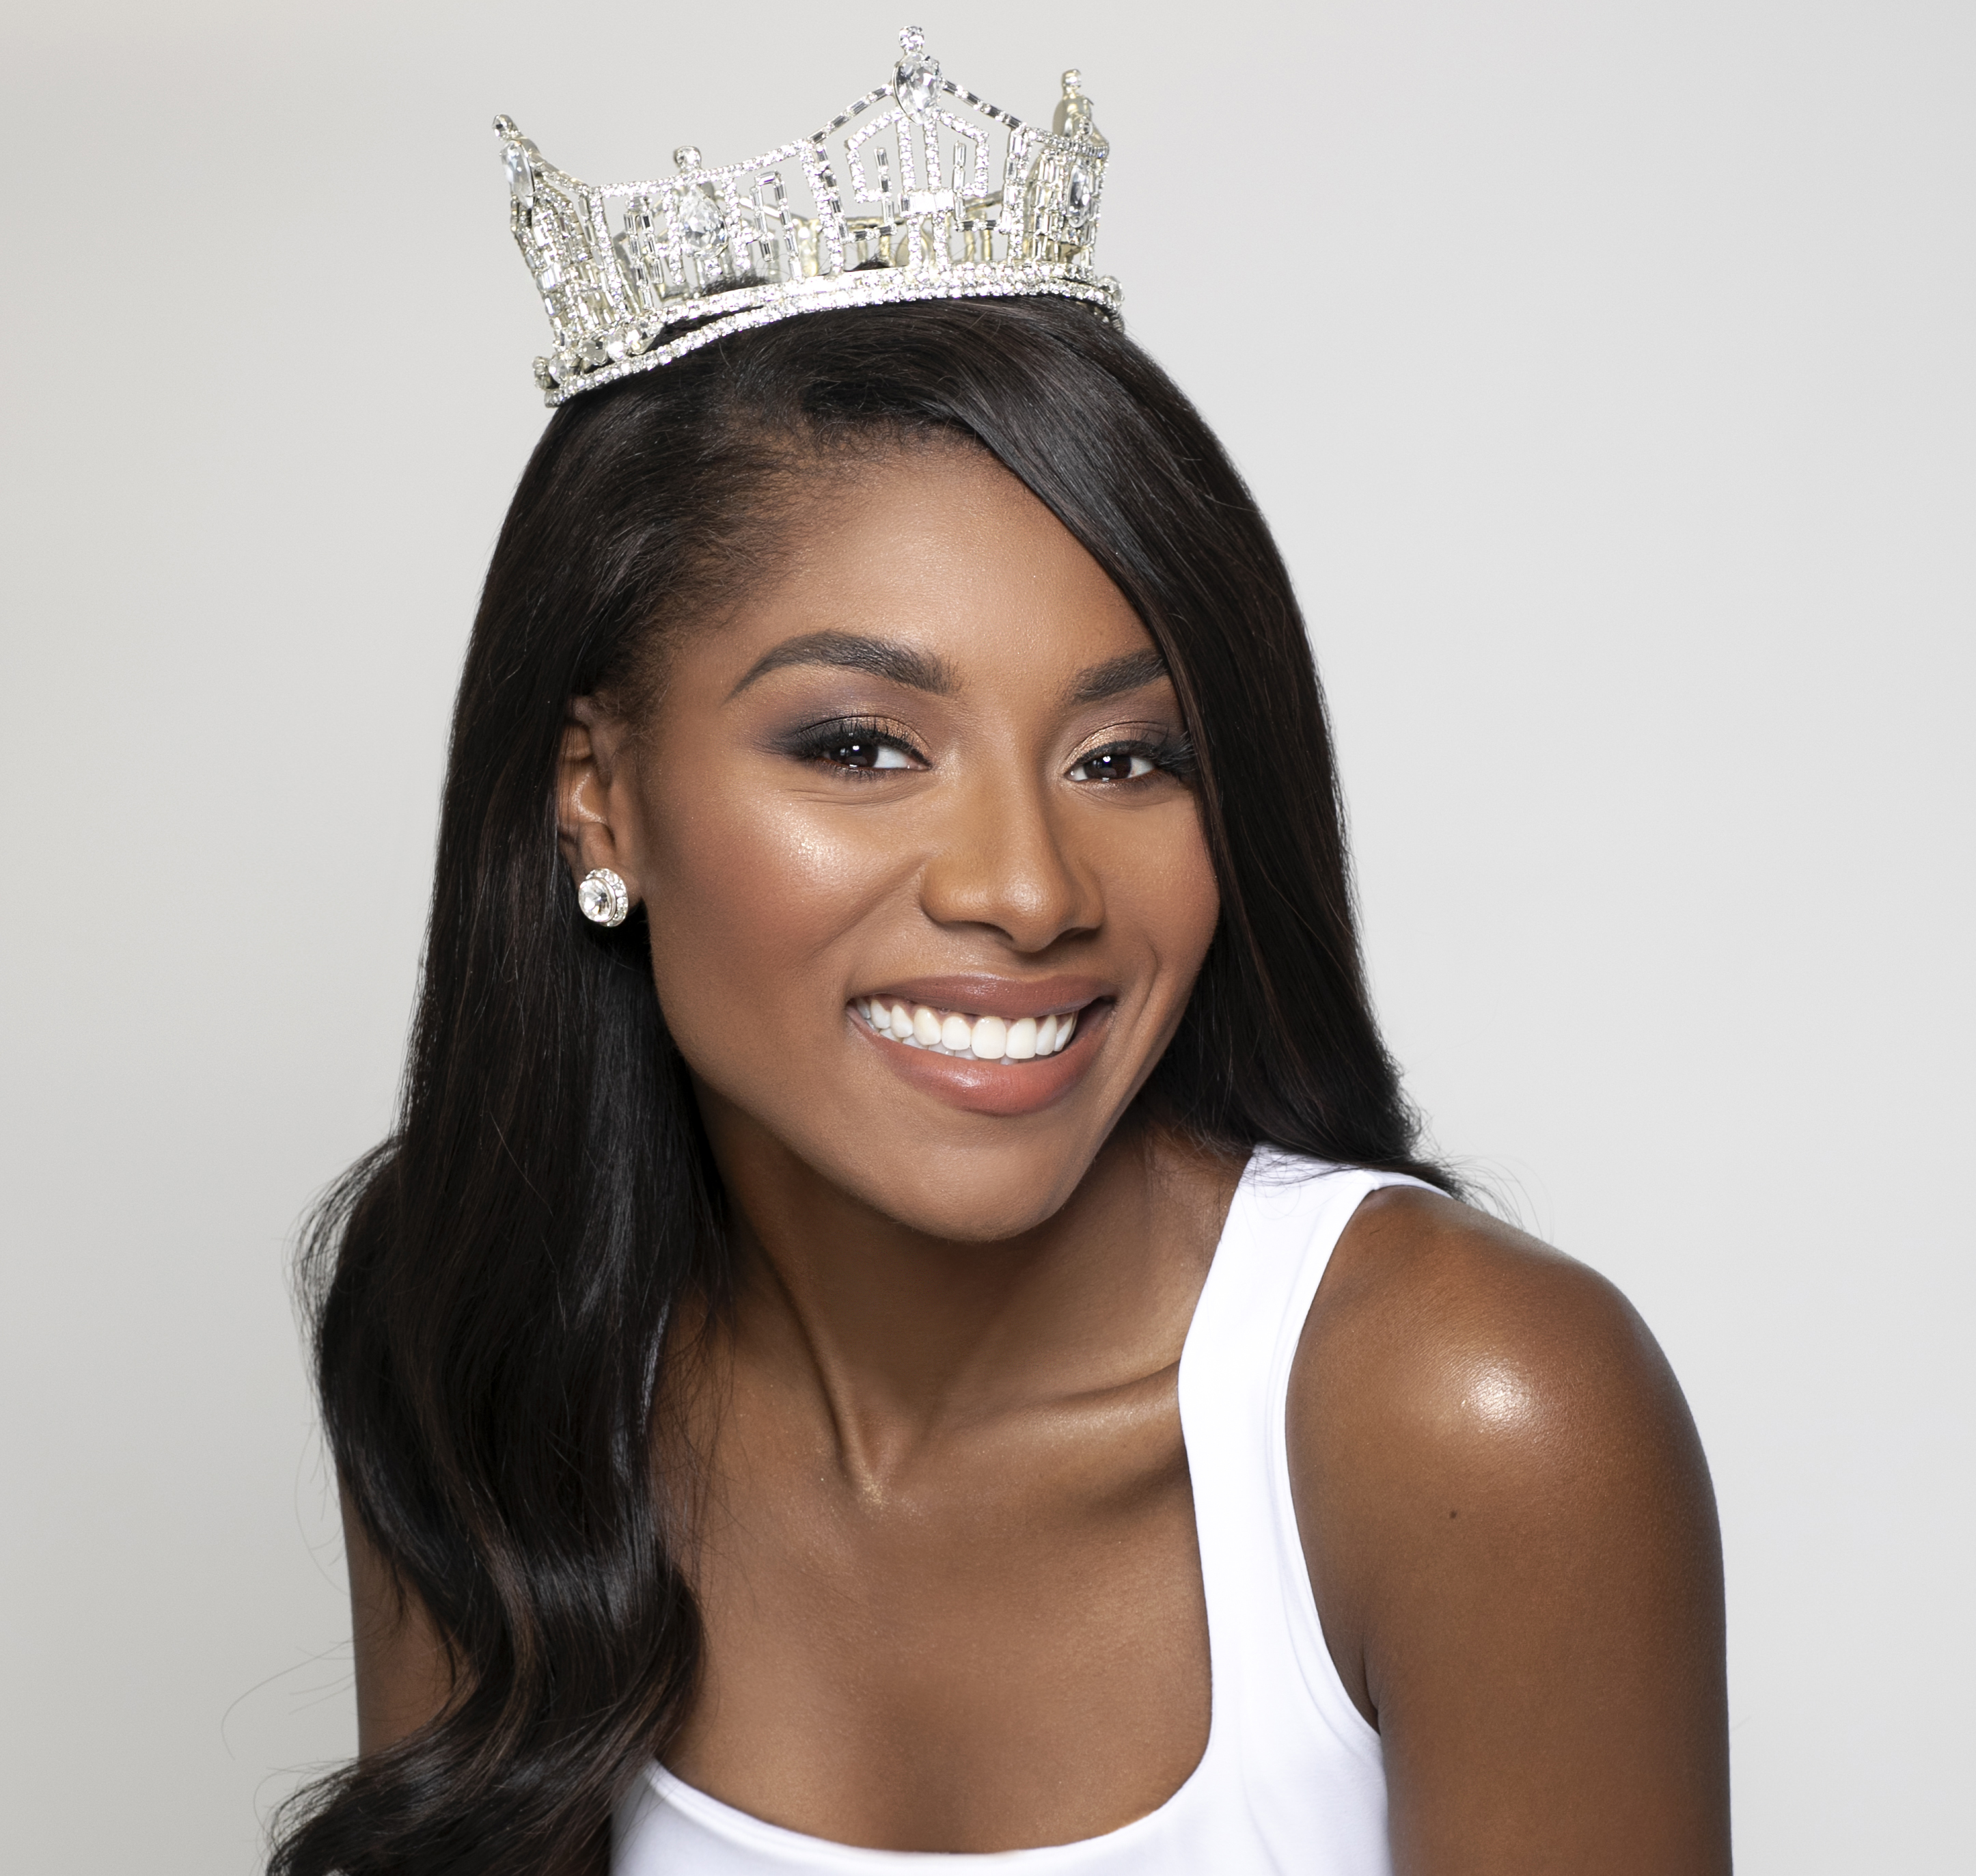 Miss America 2019 - Nia Franklin